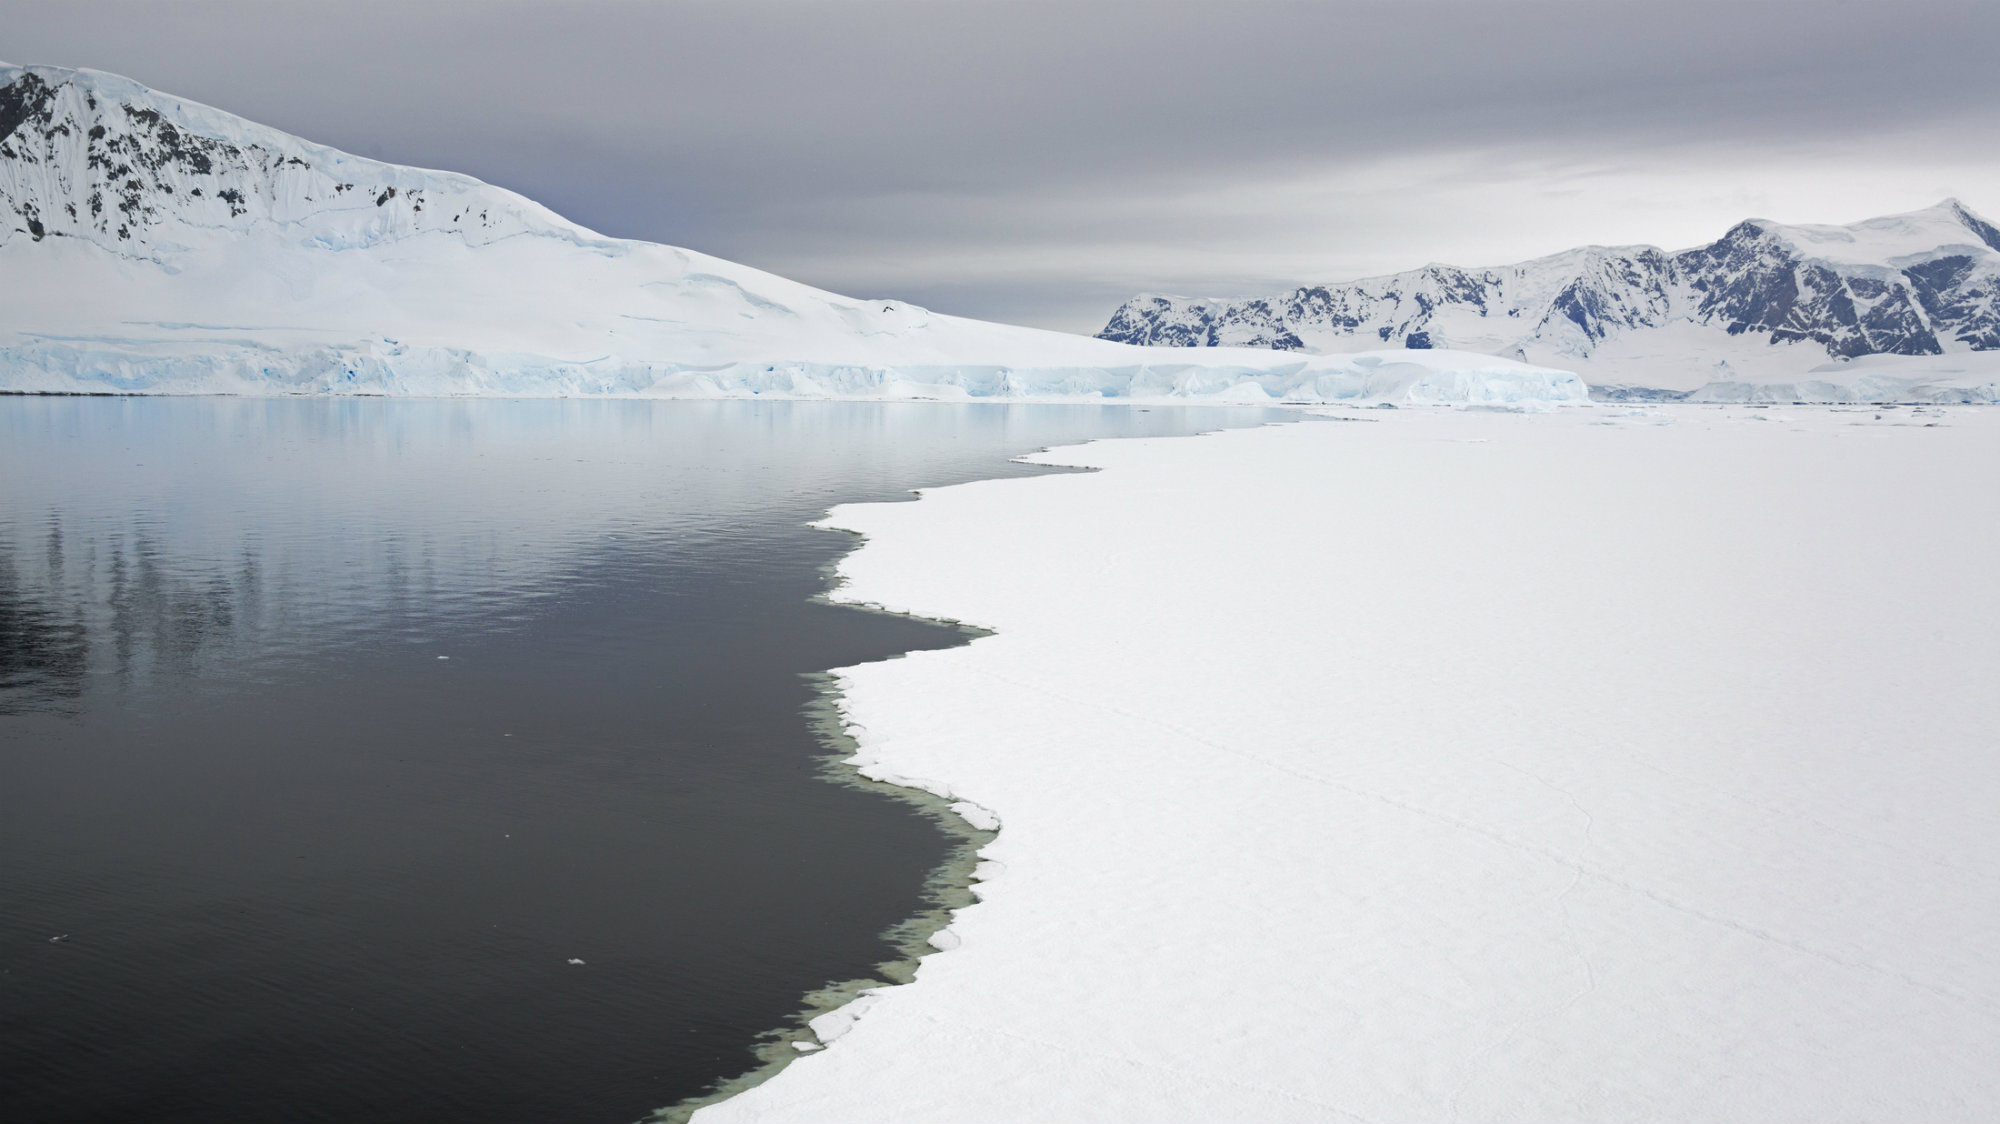 The speed of melting ice in Antarctica has grown to record levels